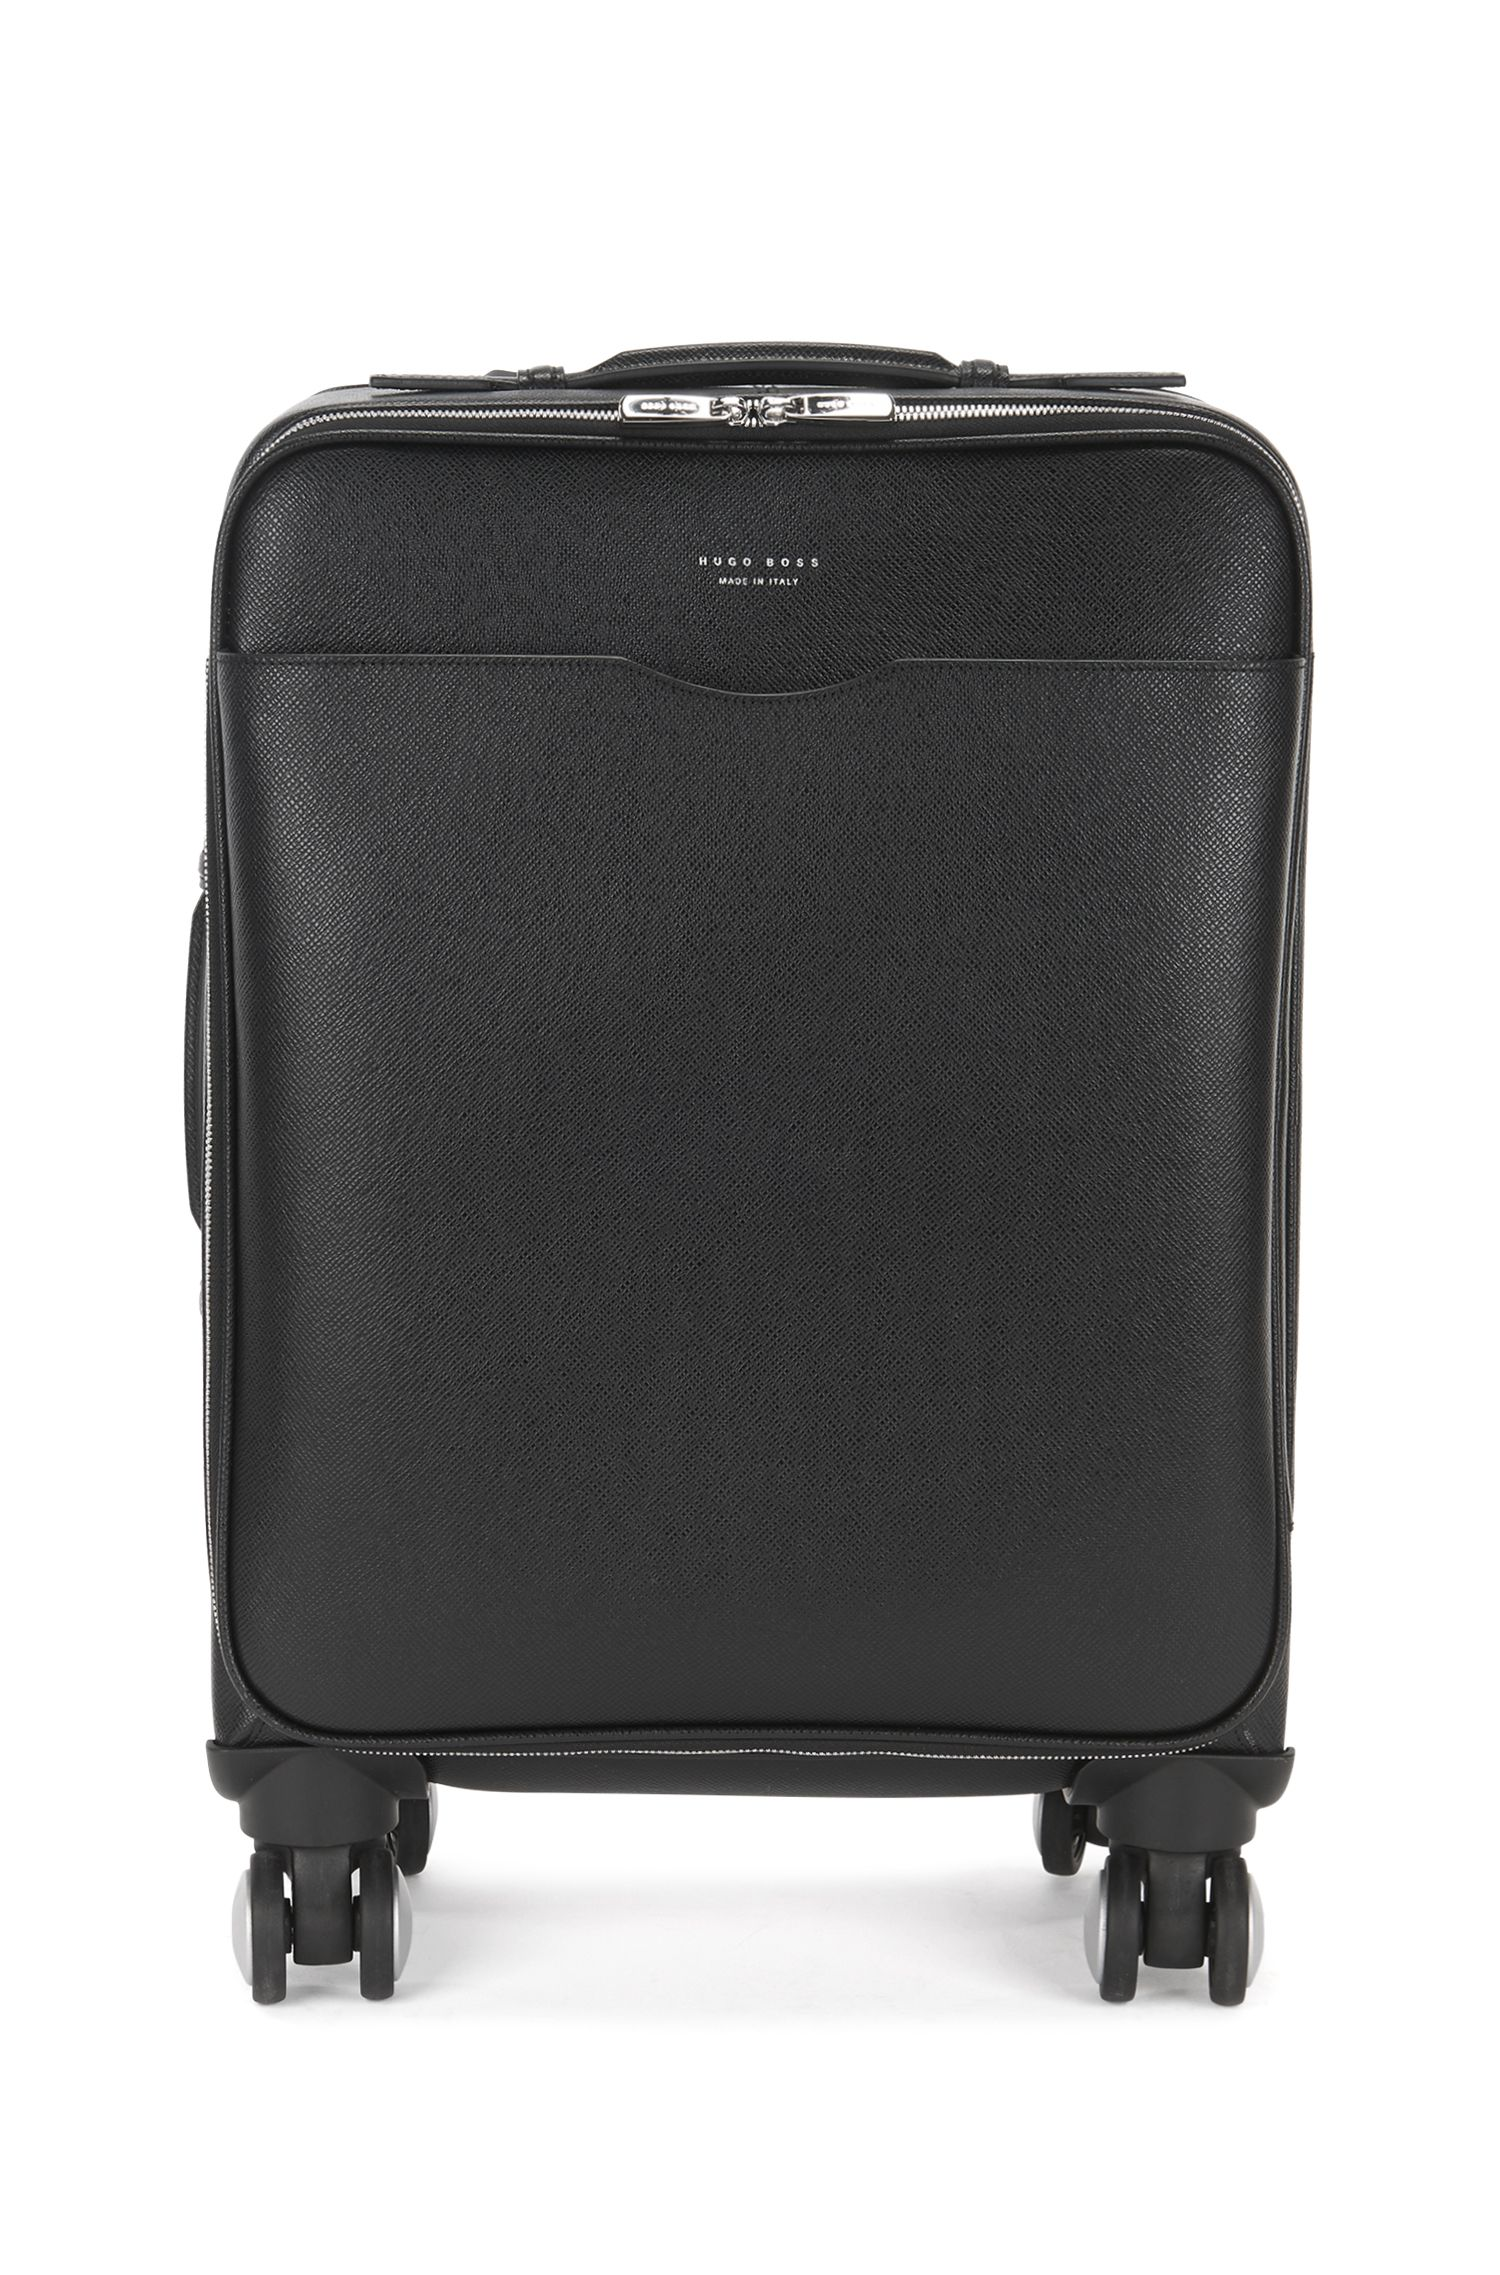 Palmellato Leather Carryon Luggage | Signature Trolley S18, Black